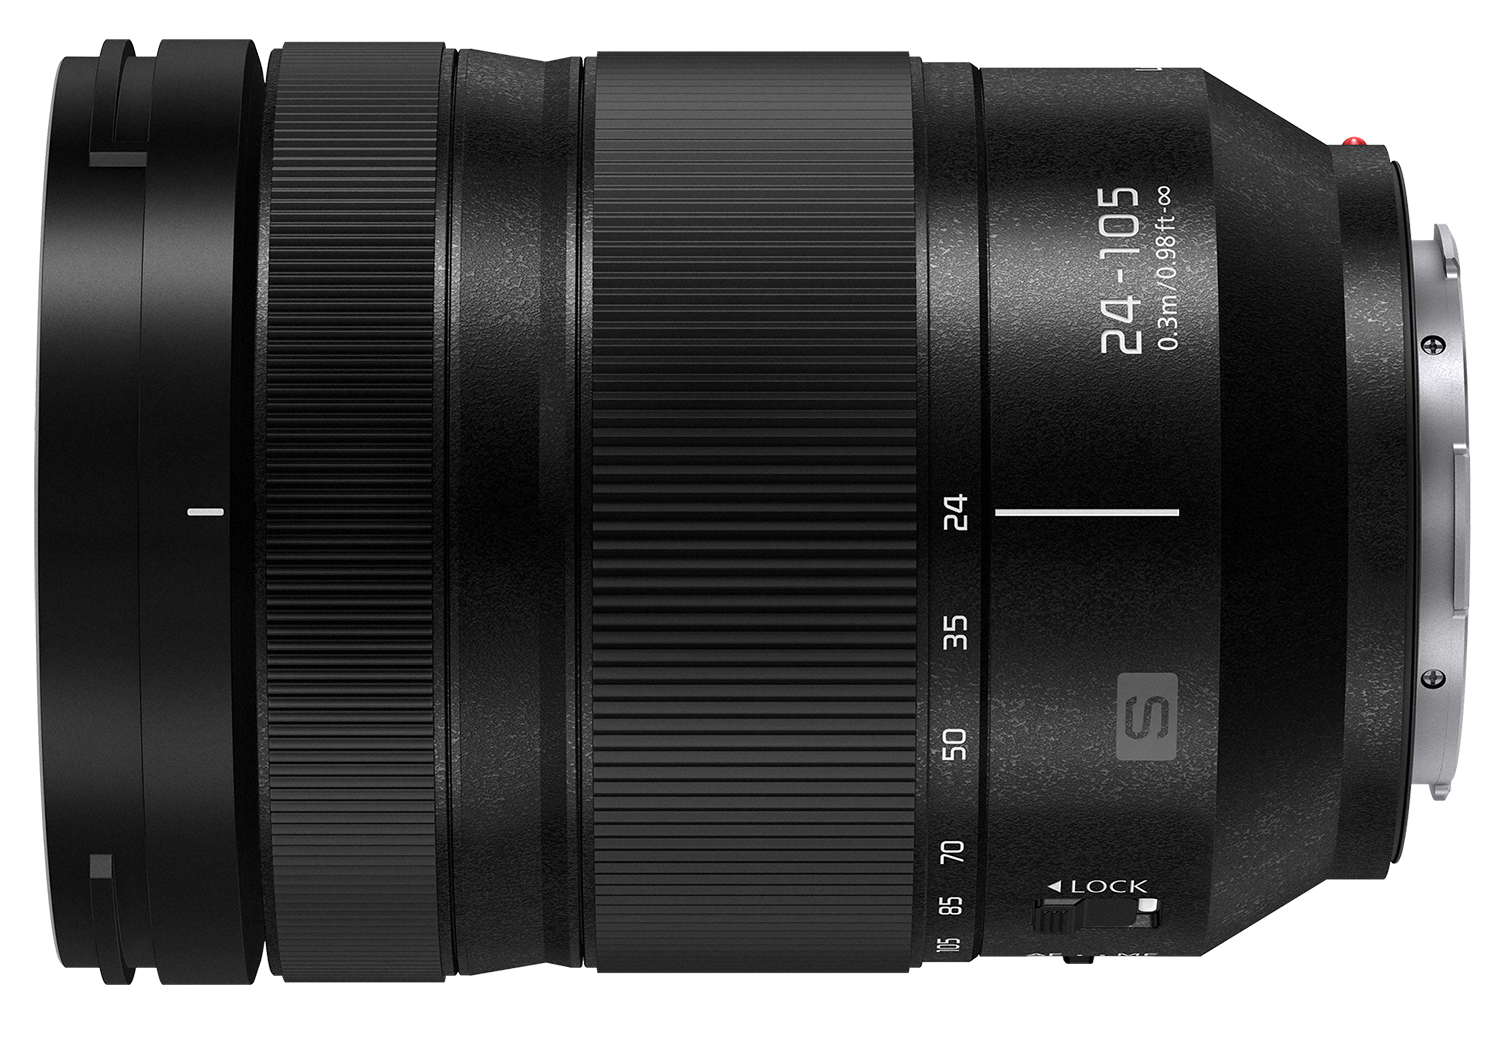 Panasonic SL Mount 24-105mm details